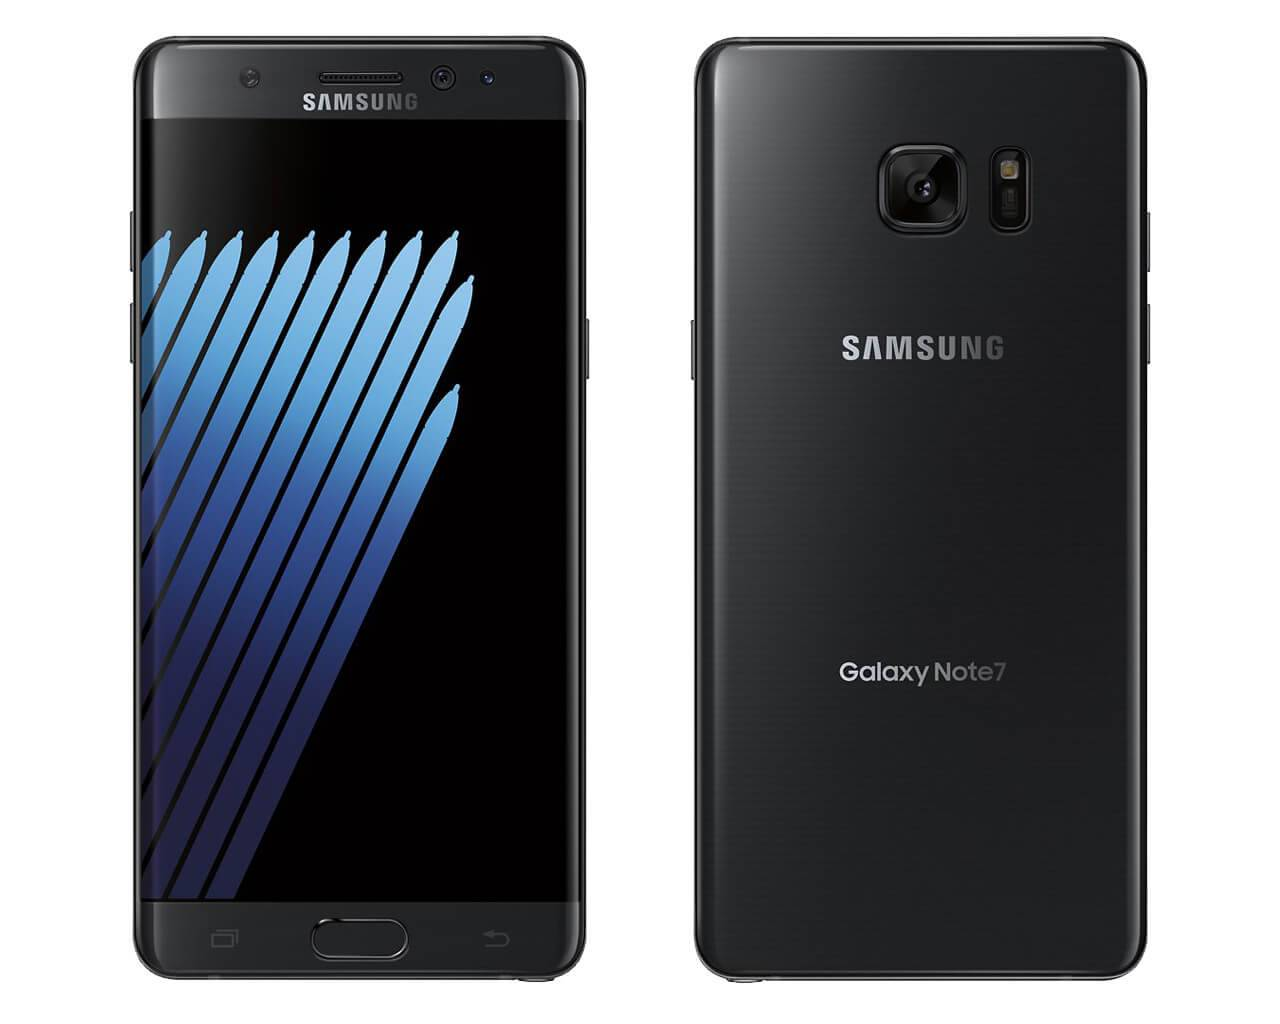 Samsung Note 7 Bing Images